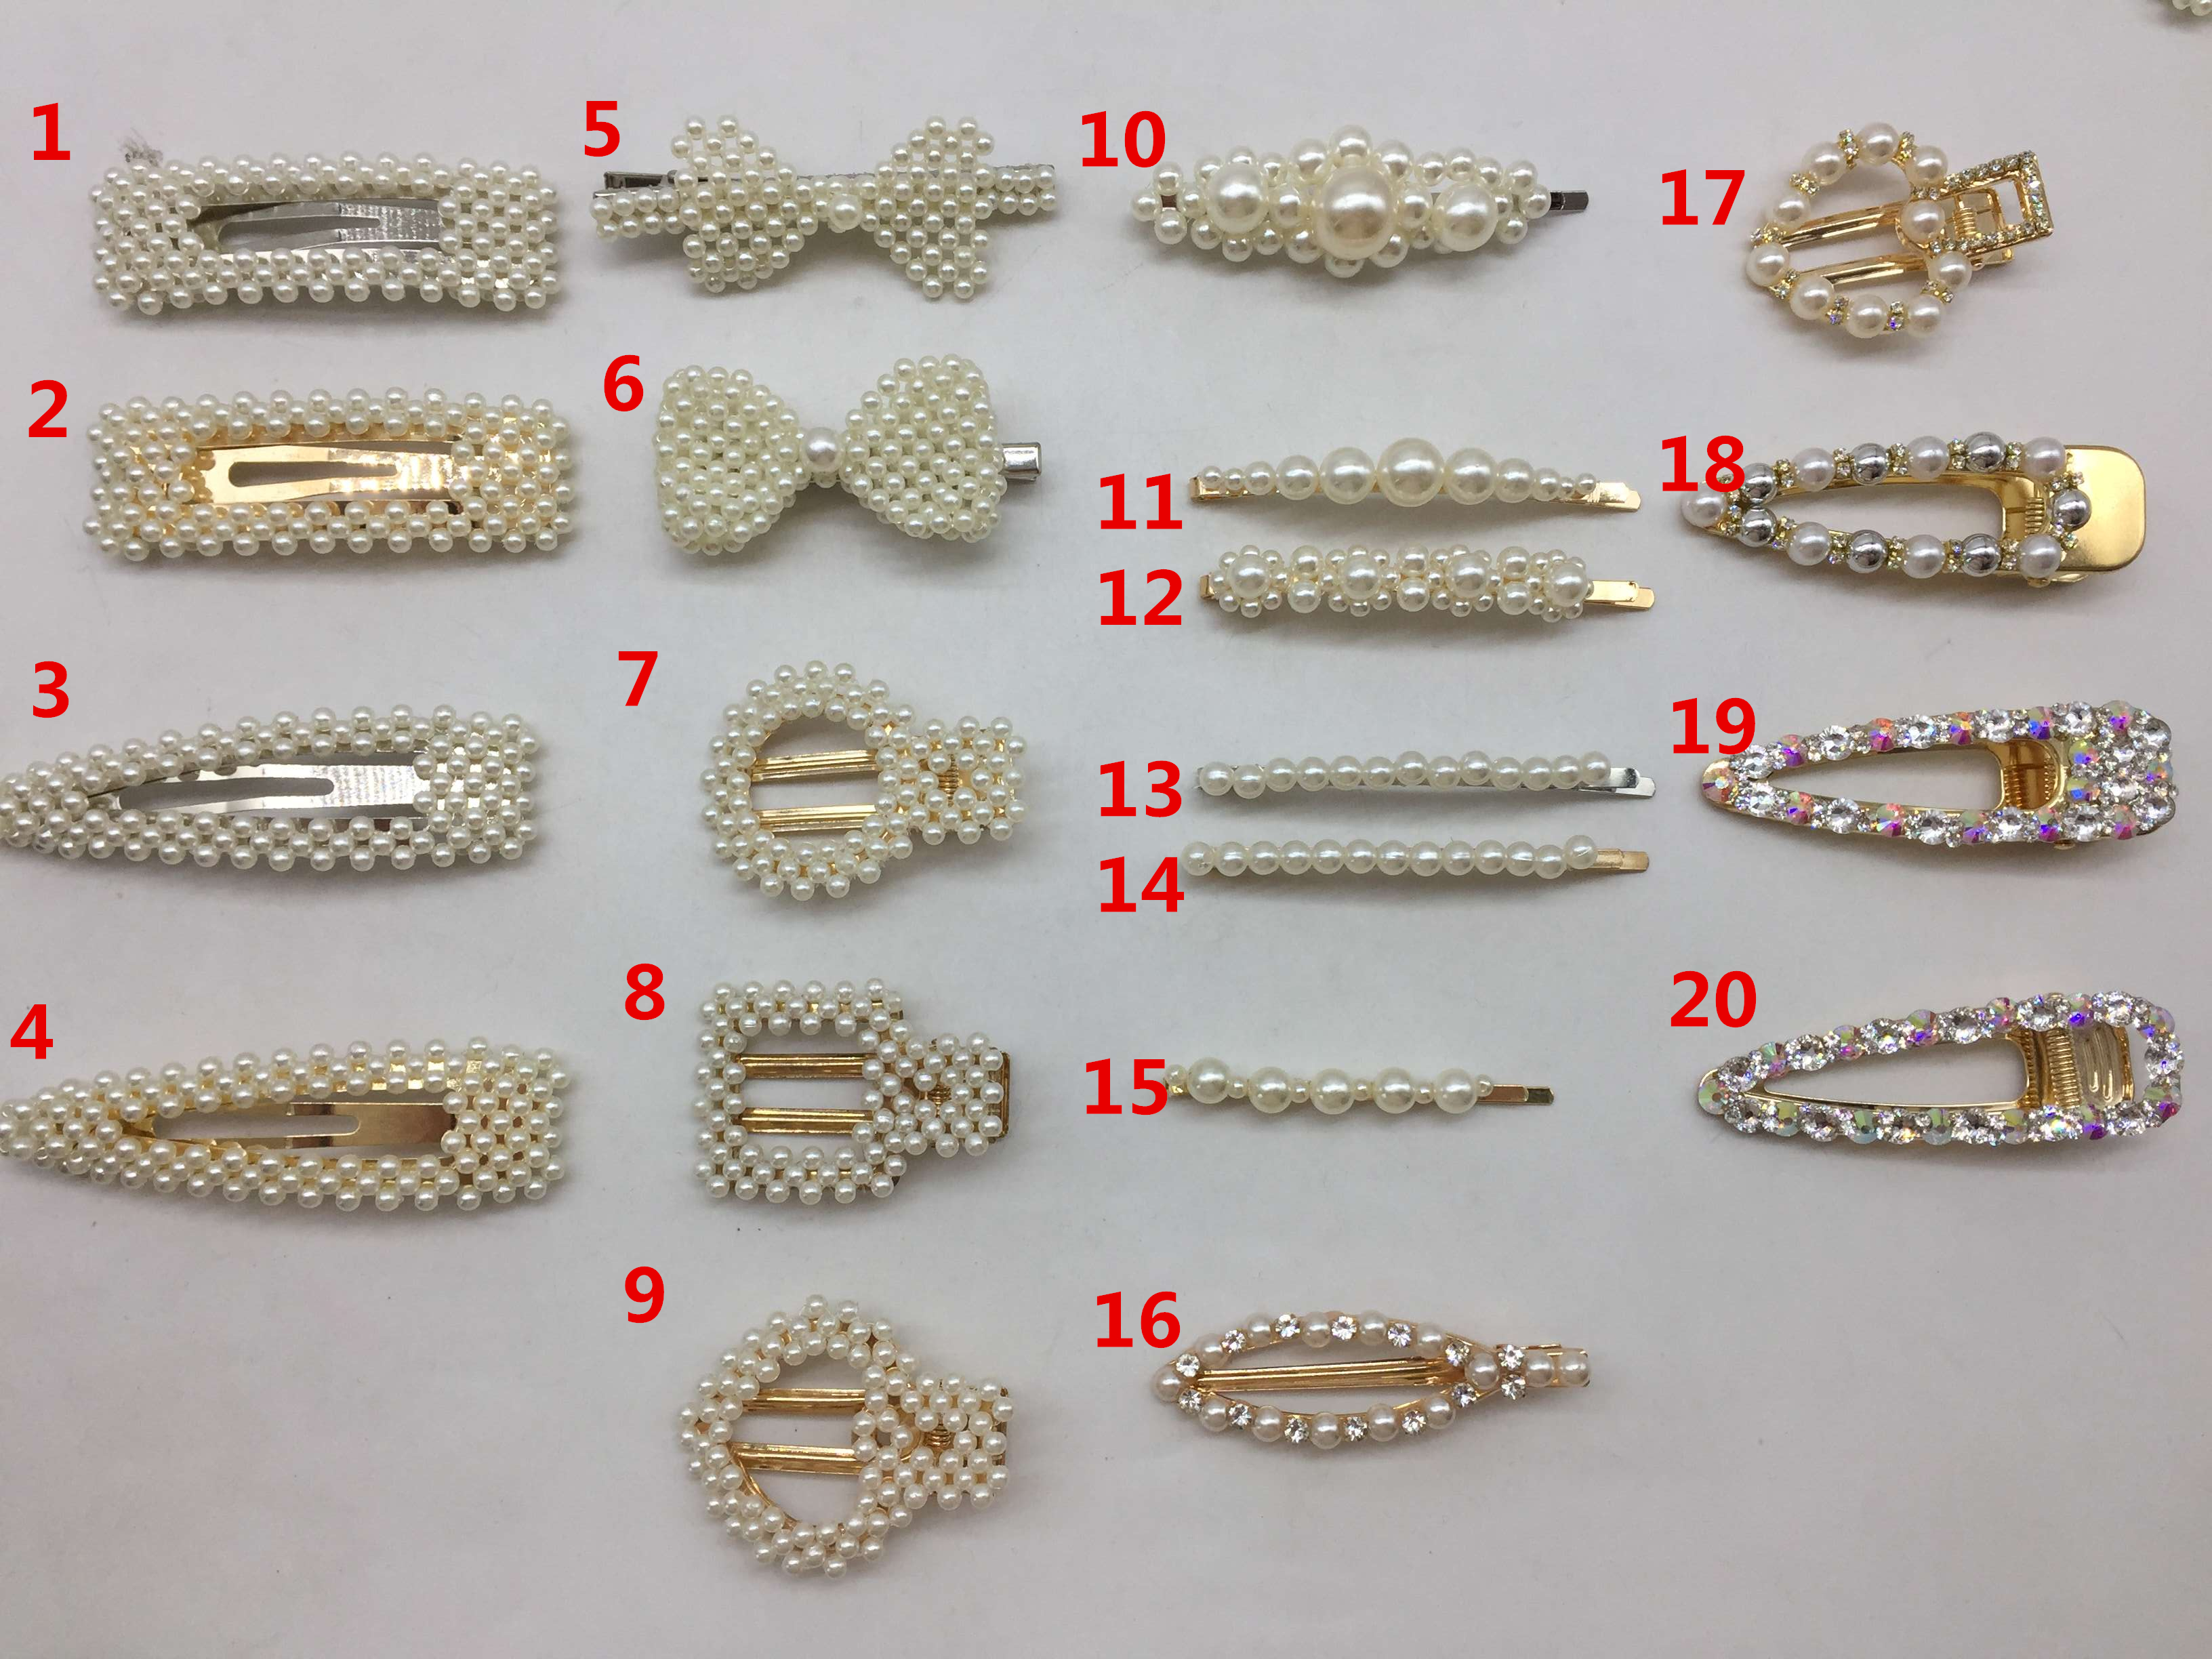 Hot-selling girls pearls and rhinestone big size snap hair clips accessories for hair